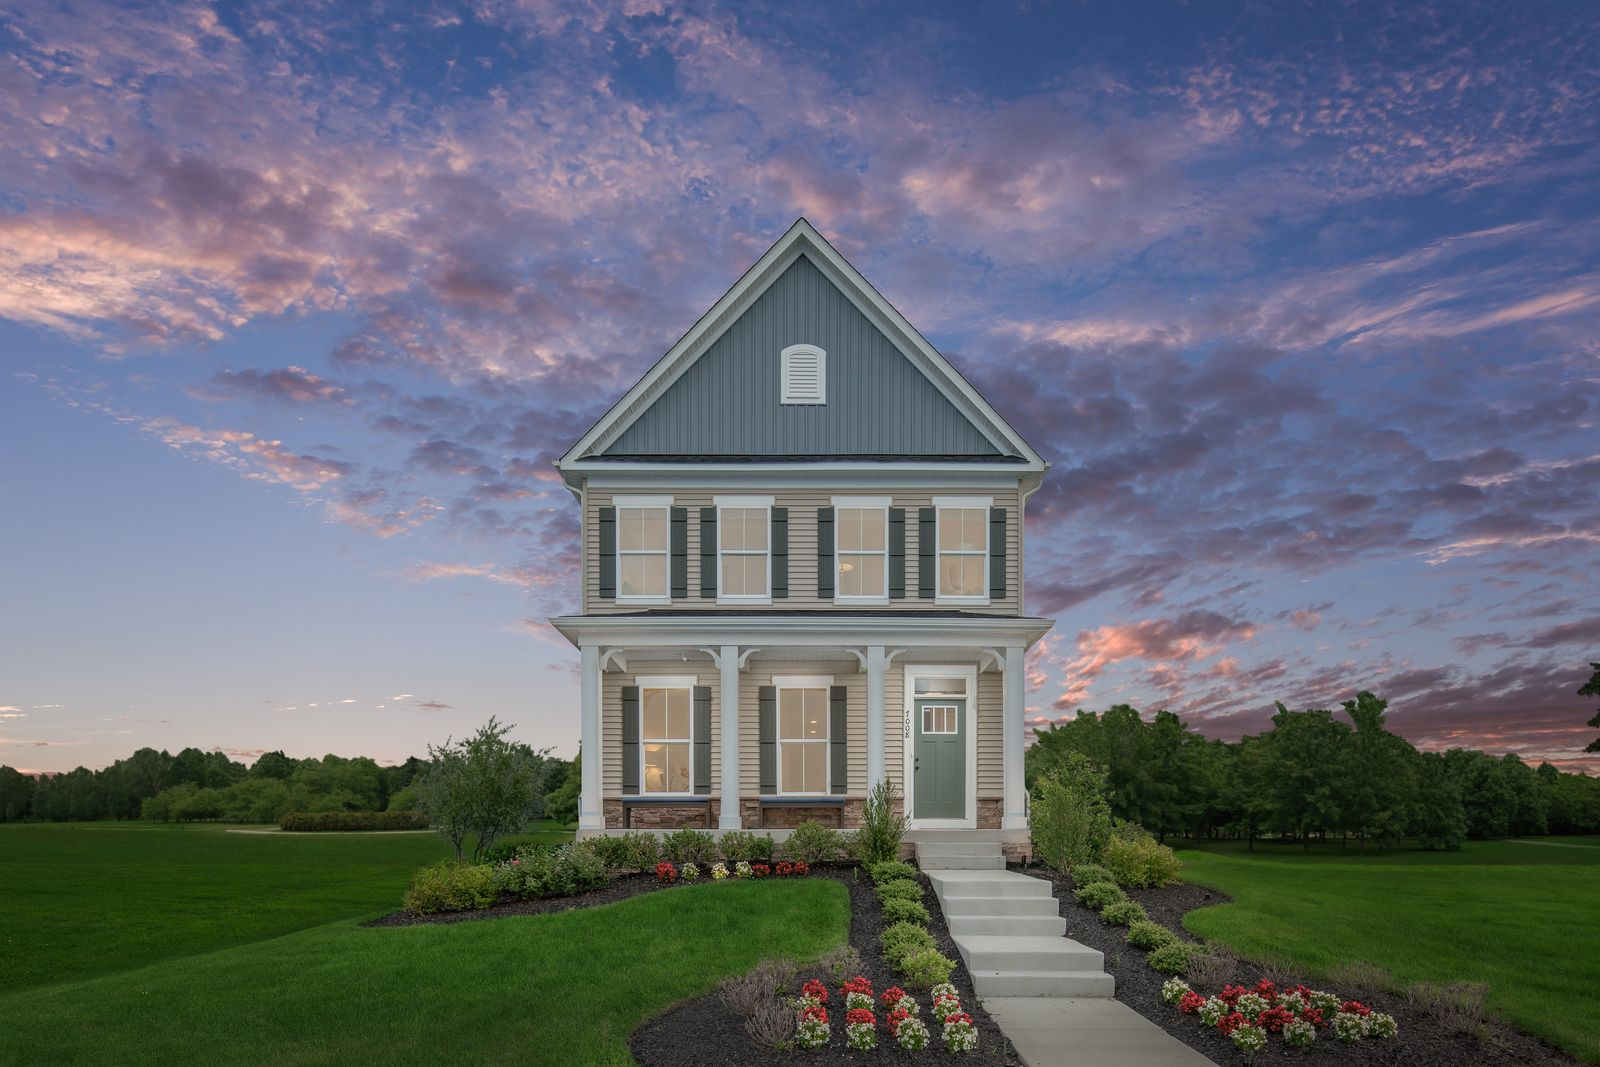 COURTHOUSE COMMONS - NEW SECTION COMING SOON:Single-family homes with 2-car garages in a quaint neighborhood with small town charm! Enjoy amenities & convenient location near shops & I-95!Click here to Join the VIP List today.